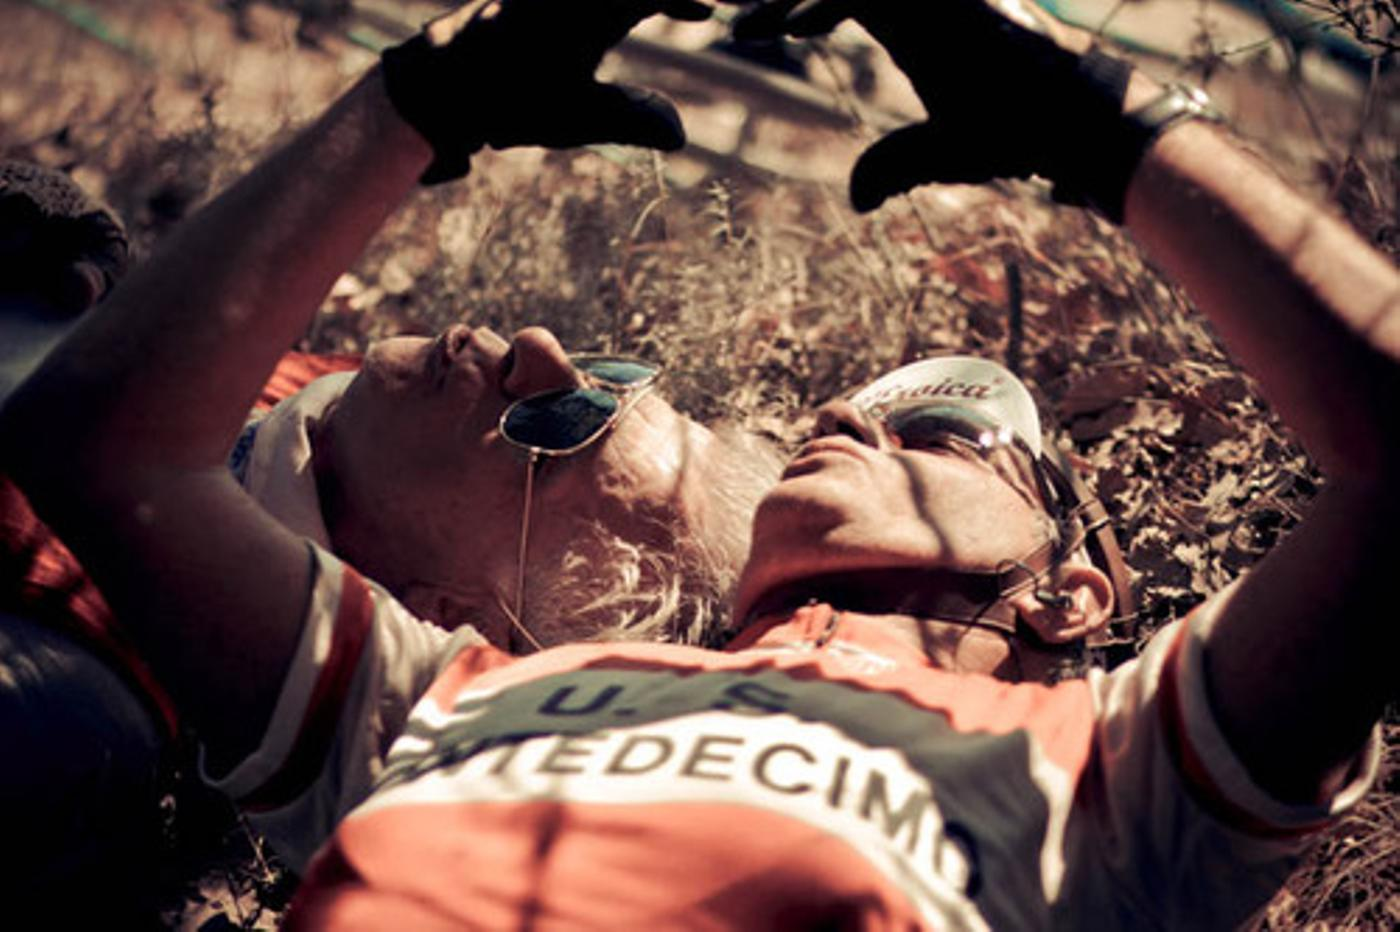 fng-feature-eroica-2011-report-1-02.jpg